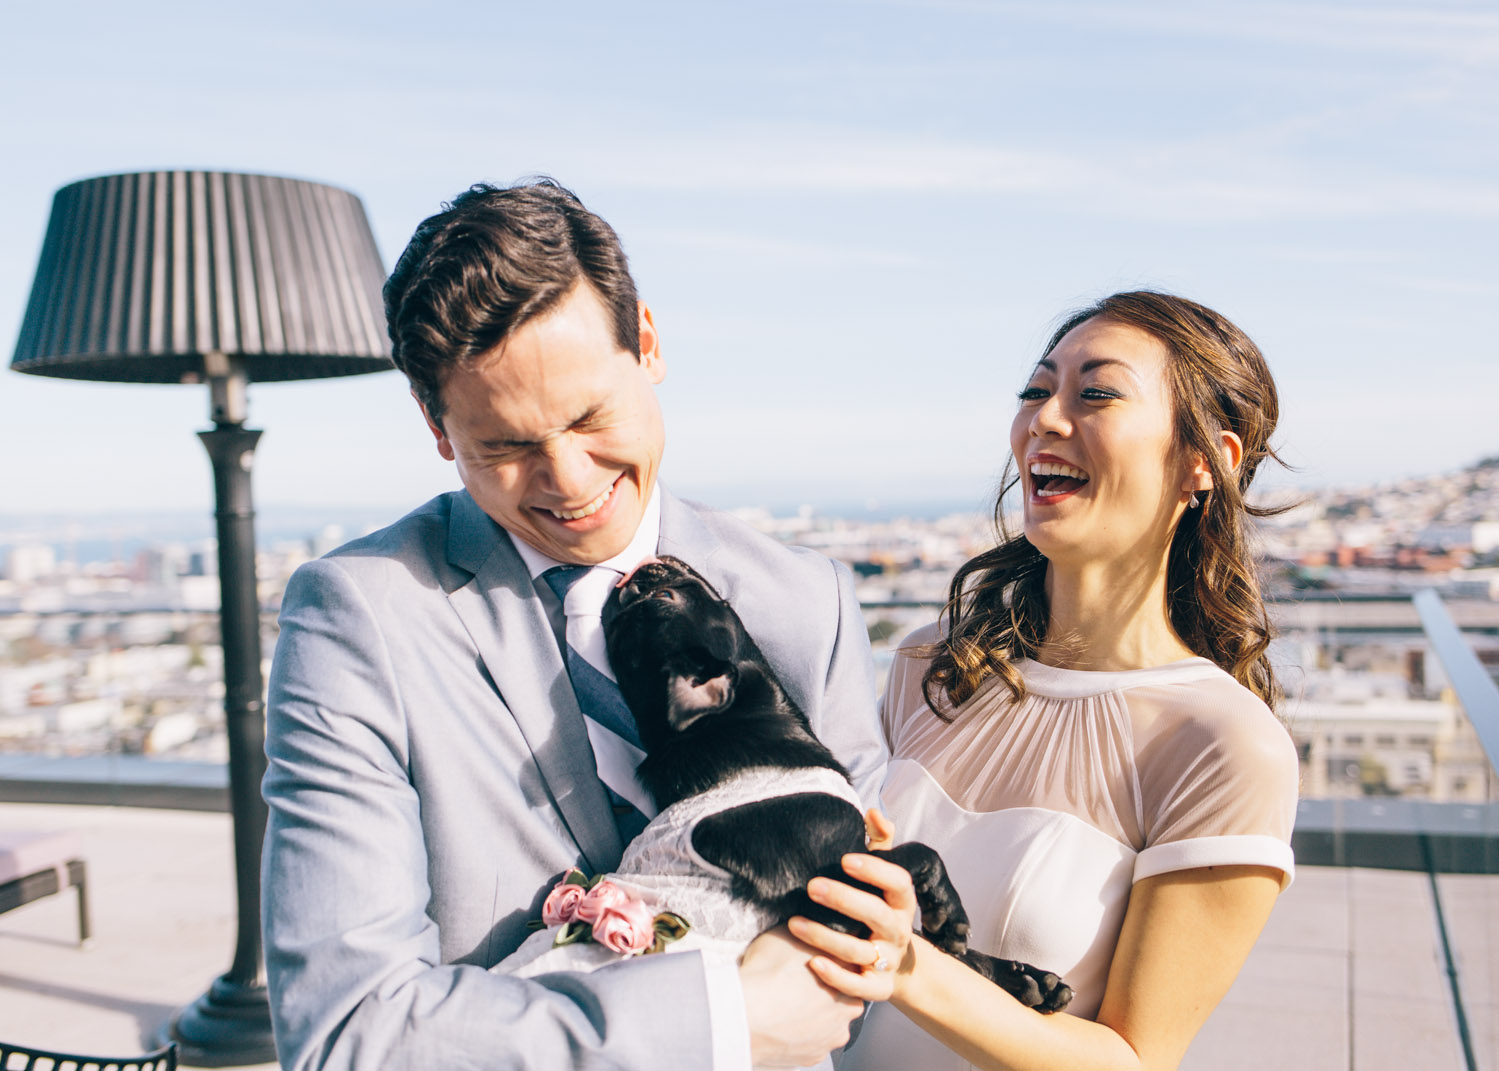 Engagement-Wedding-Photographer-San-Francisco-Engagement-session-Baker-Beach-Palace-of-Fine-Arts-and-Legion-of-Honor-byJBJ-Pictures-4.jpg